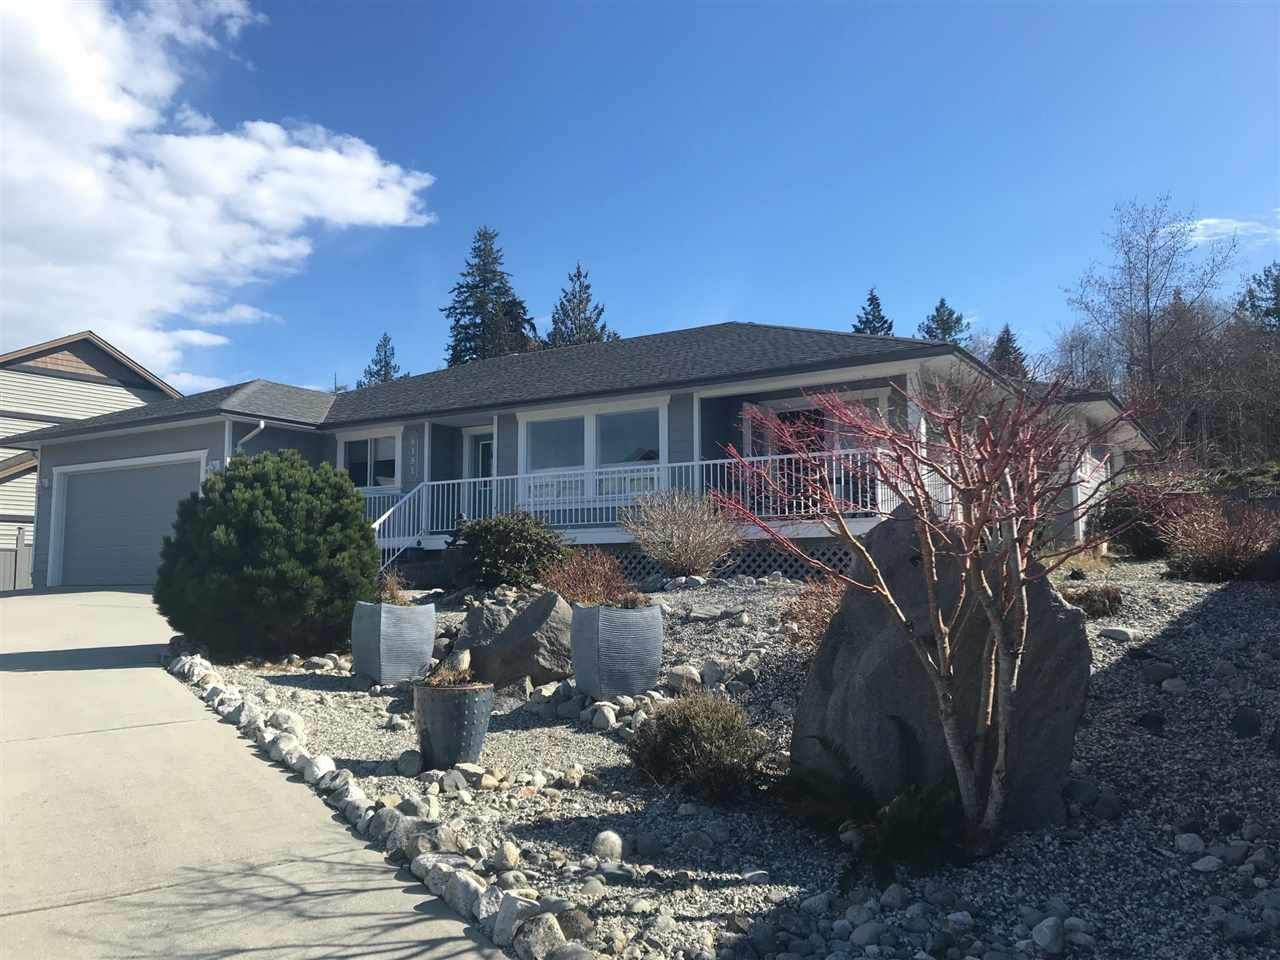 Main Photo: 6151 HIGHMOOR PLACE in : Sechelt District House for sale : MLS®# R2353148